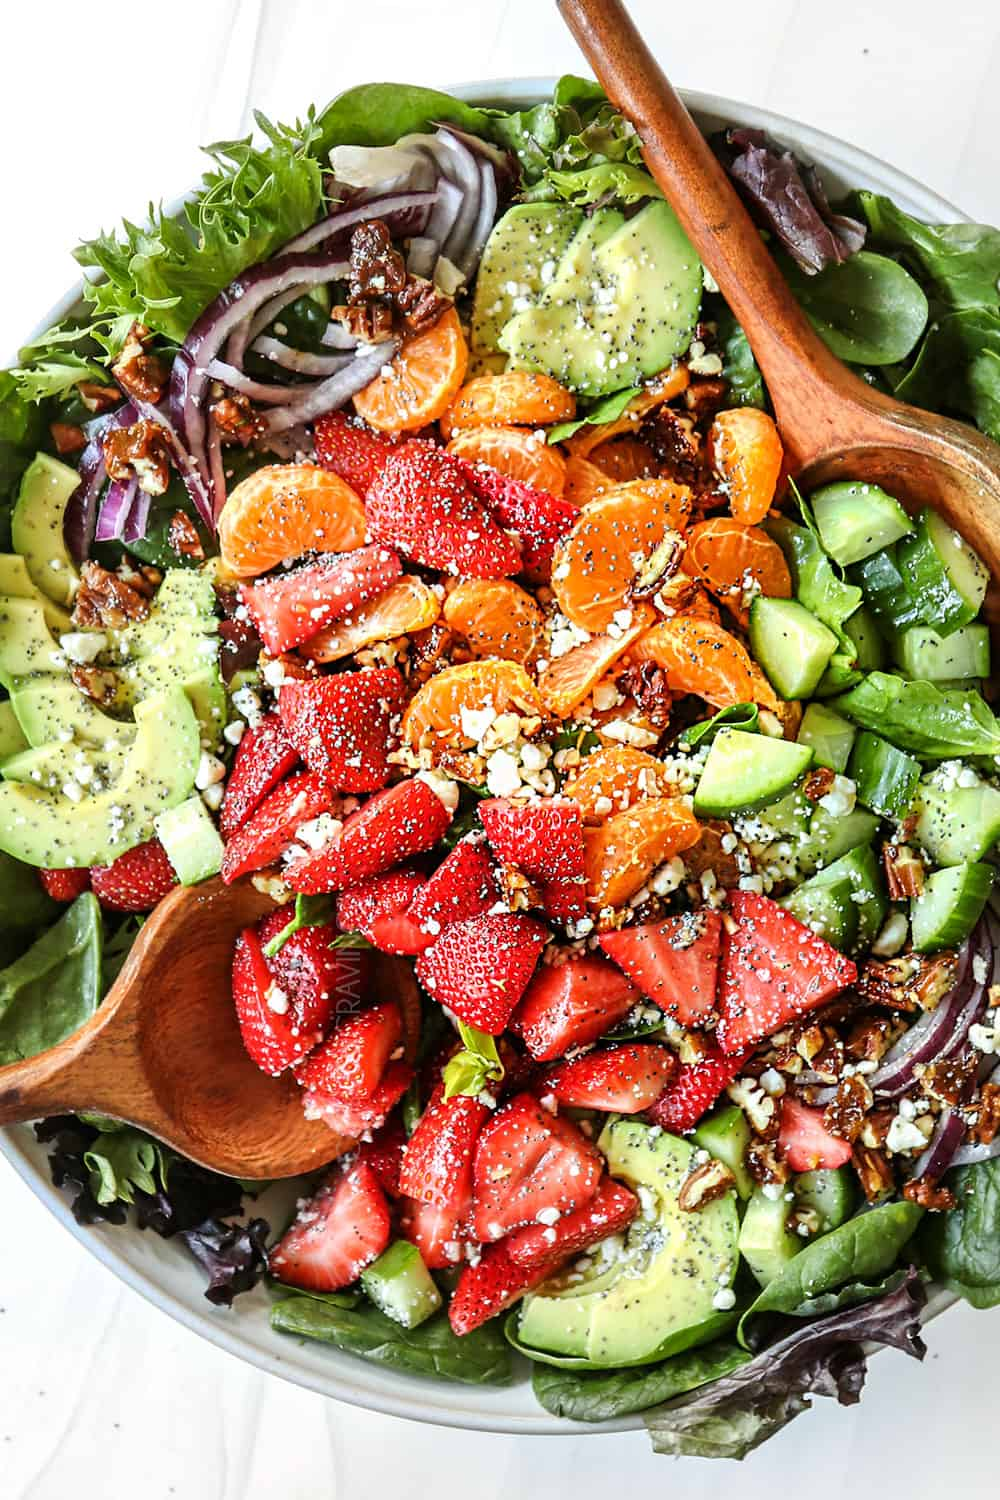 showing how to make strawberry spinach salad recipe by adding spinach, strawberries, clementine oranges, cucumbers, avocados and red onions to a bowl